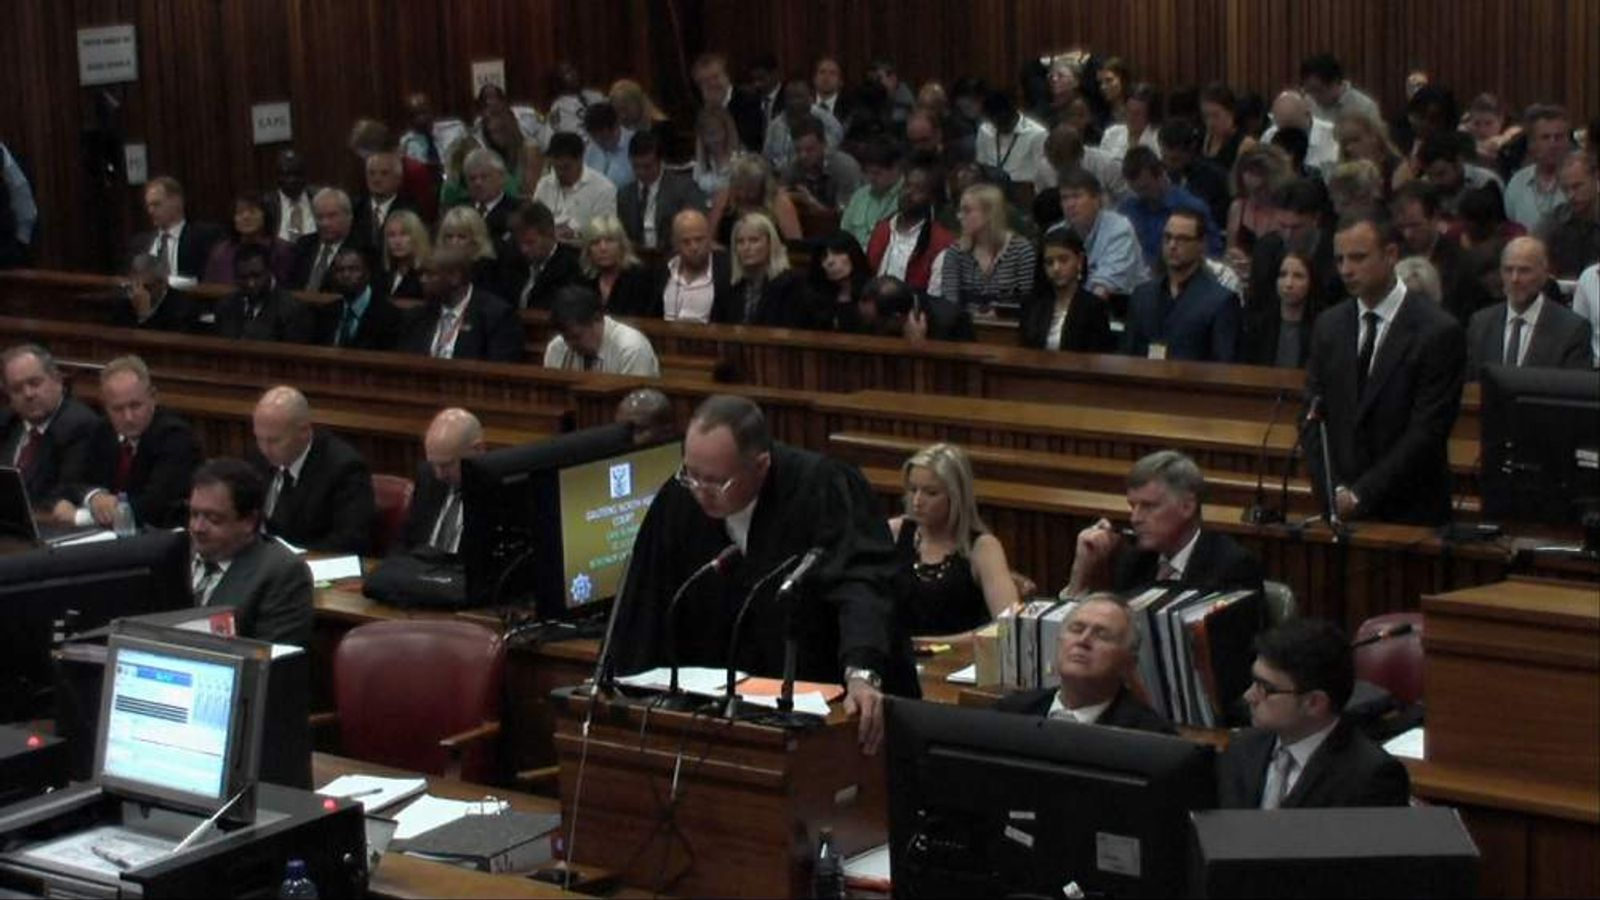 Oscar Pistorius standing behind is defence counsel